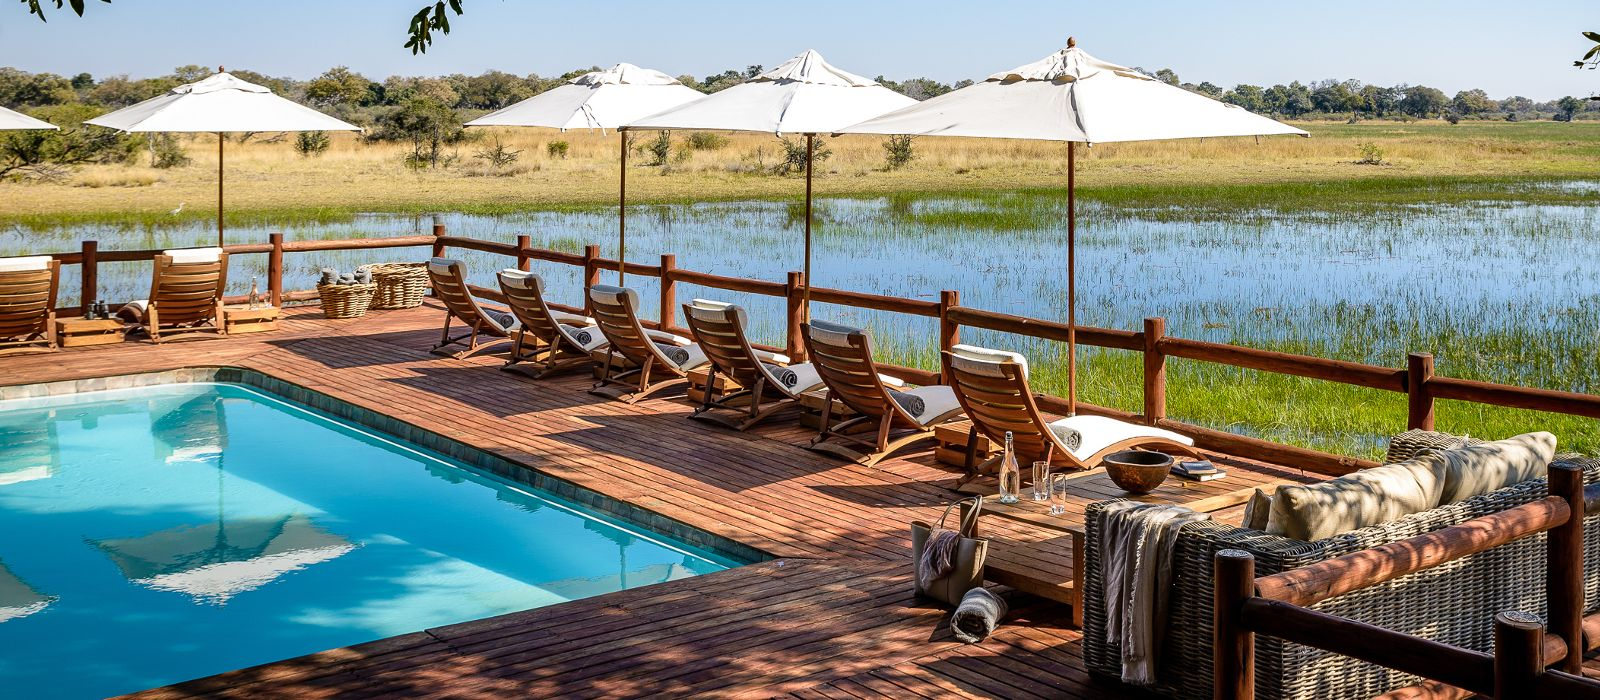 Hotel Sanctuary Chief's Camp Botswana